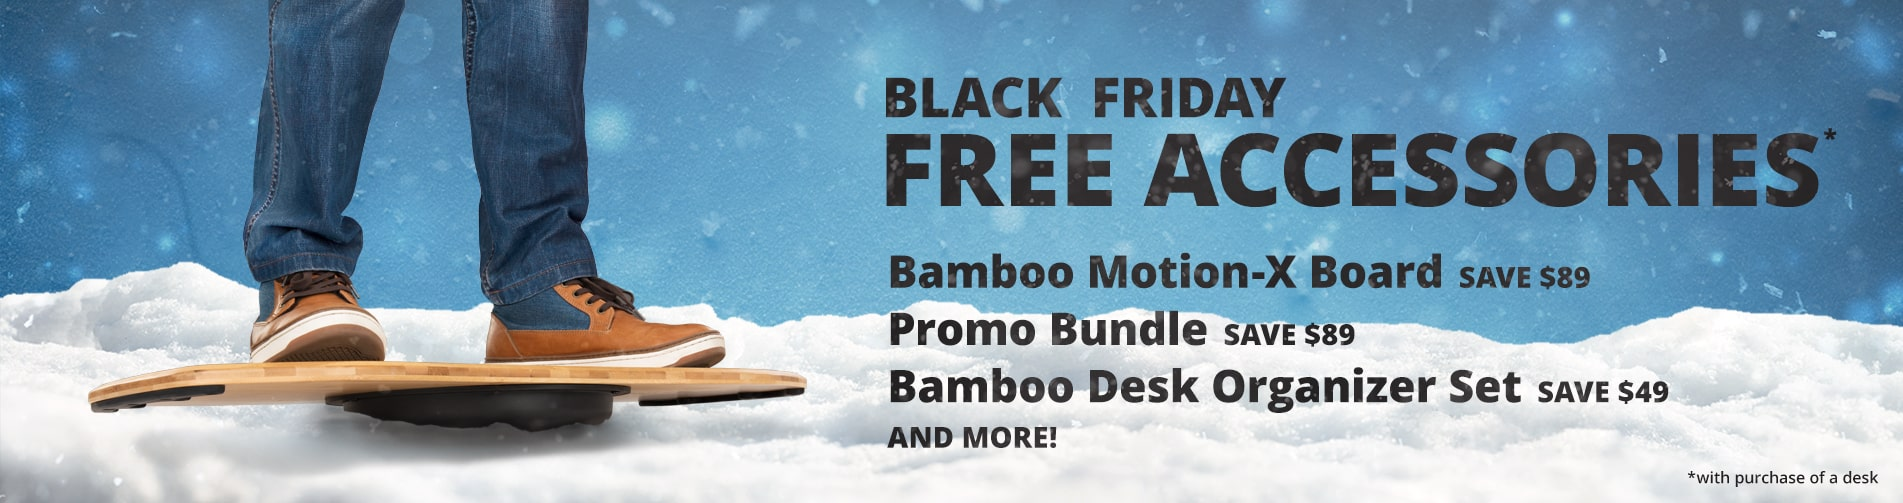 Get your choice of free accessories for Black Friday!